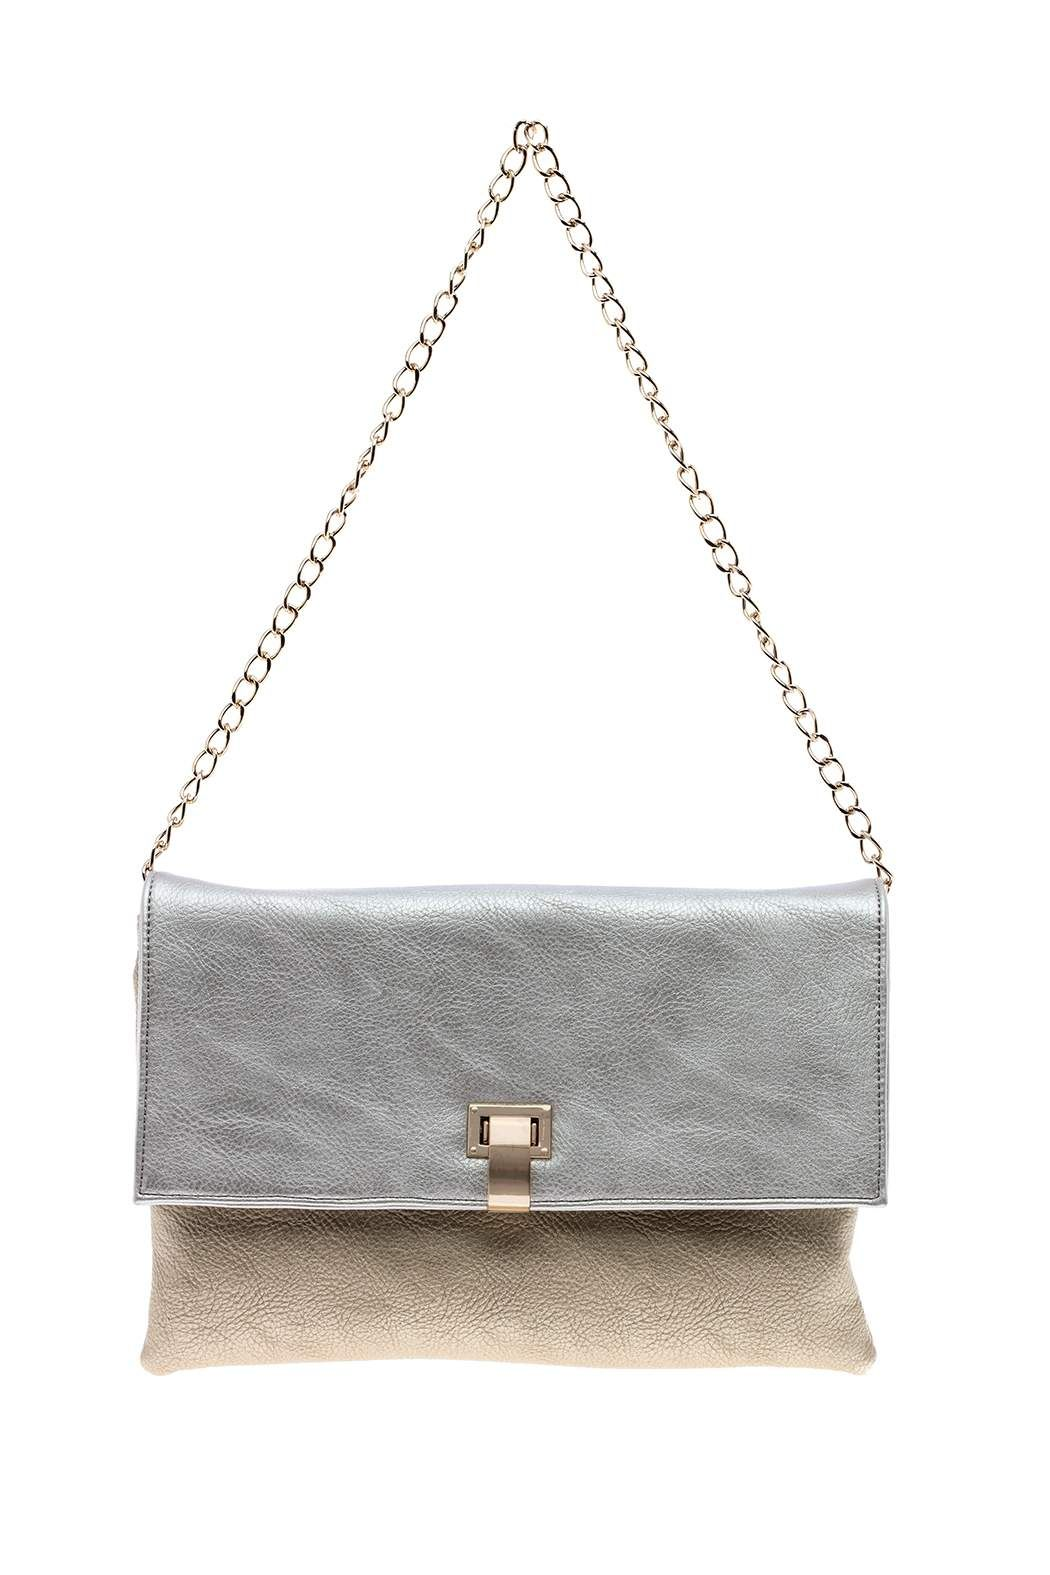 Magnetic Snap On Lined Interior Zip Pocket And Two Slip Pockets Silver Gold Clutch By Sondra Roberts Bags Clutches Casual New York